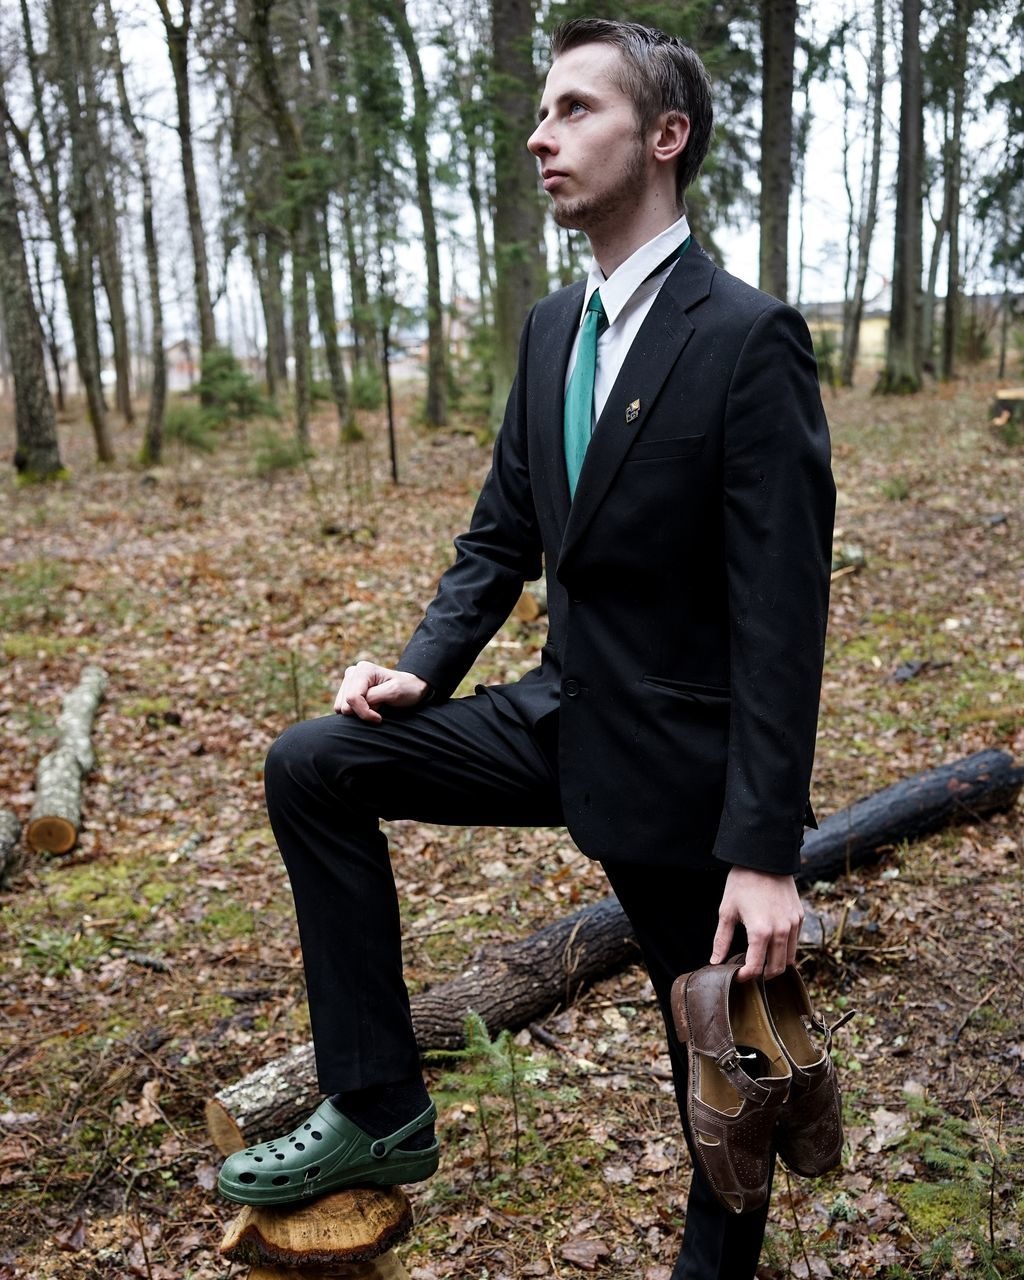 one person, forest, tree, full length, leisure activity, young men, autumn, young adult, lifestyles, men, outdoors, suit, side view, day, holding, handsome, nature, real people, standing, branch, portrait, businessman, one man only, adult, people